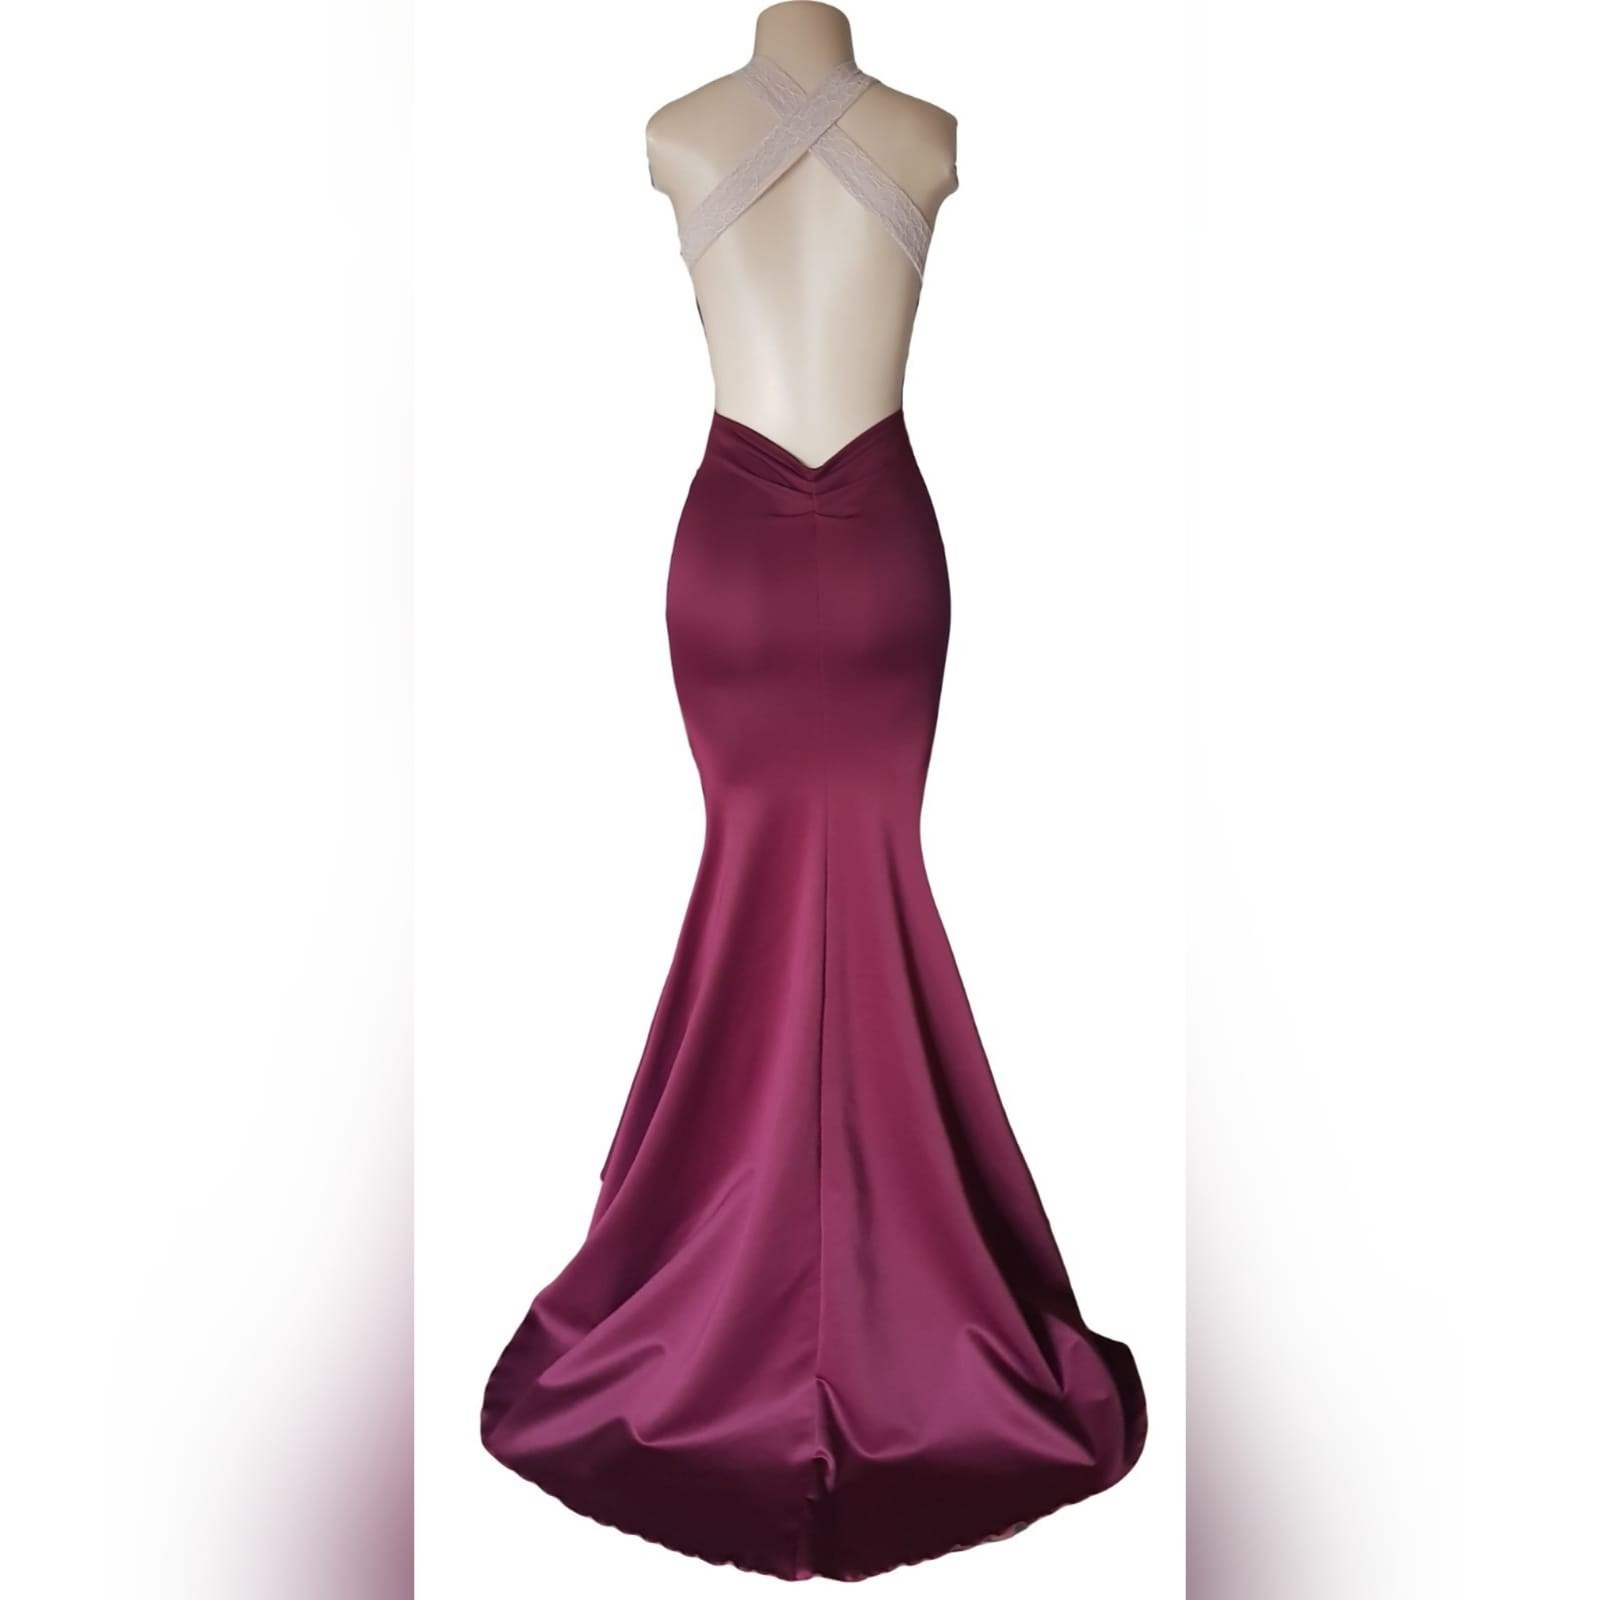 "Simple elegant soft mermaid maroon prom dress 4 <blockquote>""you were born to stand out, stop trying to fit in"". Roy t. Bennett</blockquote> simple elegant soft mermaid matric prom dress with an overlayer of cream lace on the bodice to add a unique touch to the design. Plunging neckline, low open back and lace wide crossed shoulder straps. With a matching lipstick/cellphone bag"